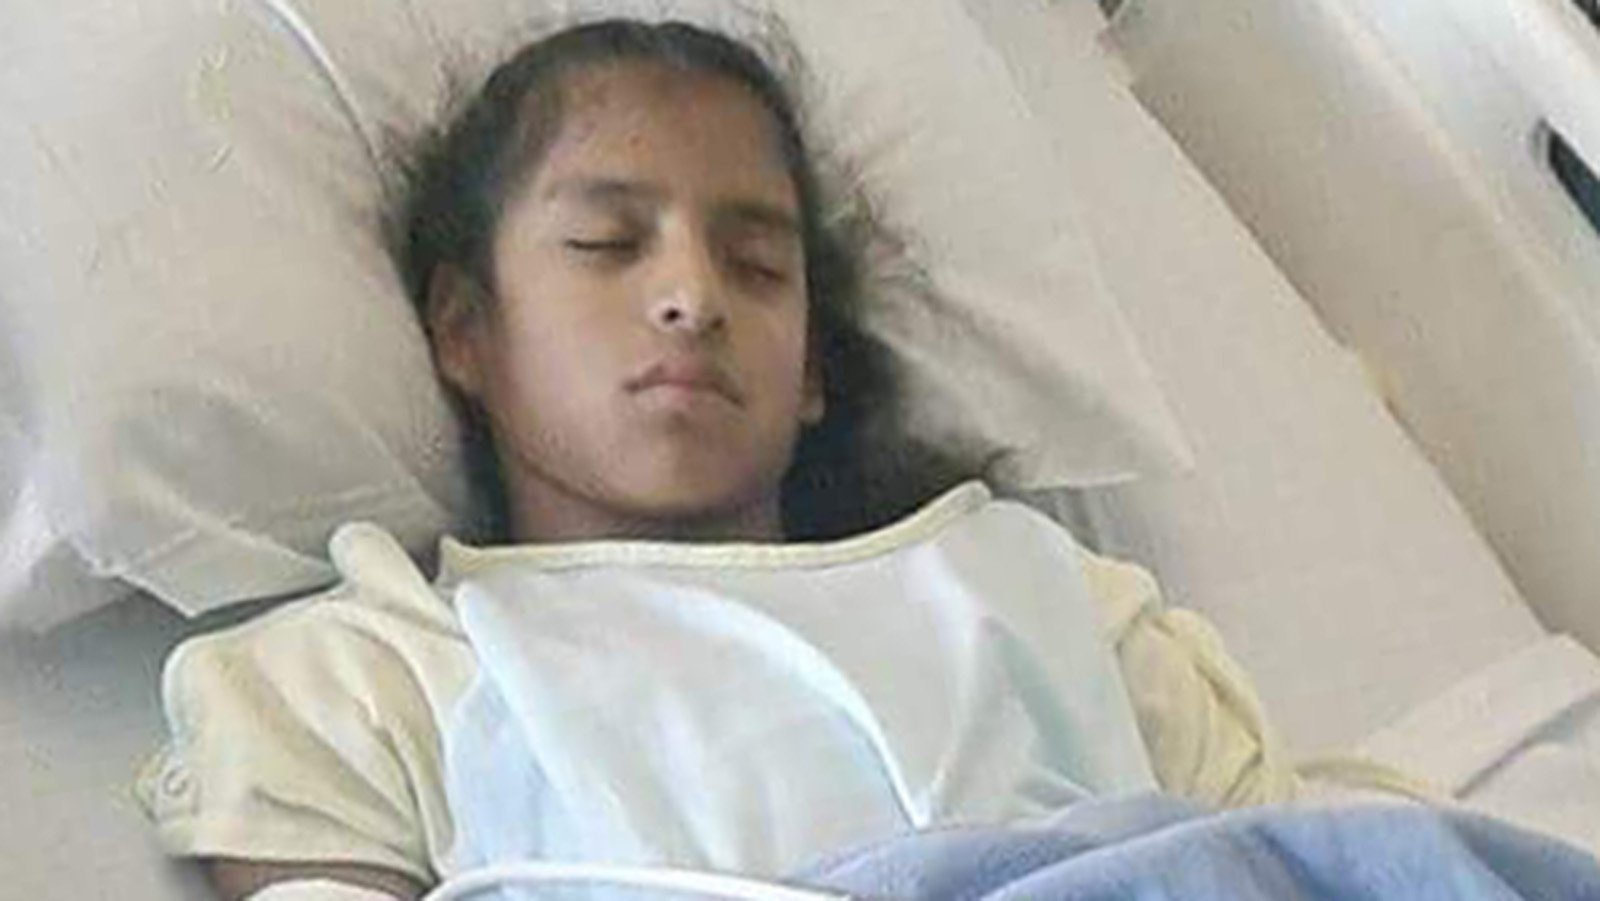 Family Attorney discusses 10-year-old facing deportation